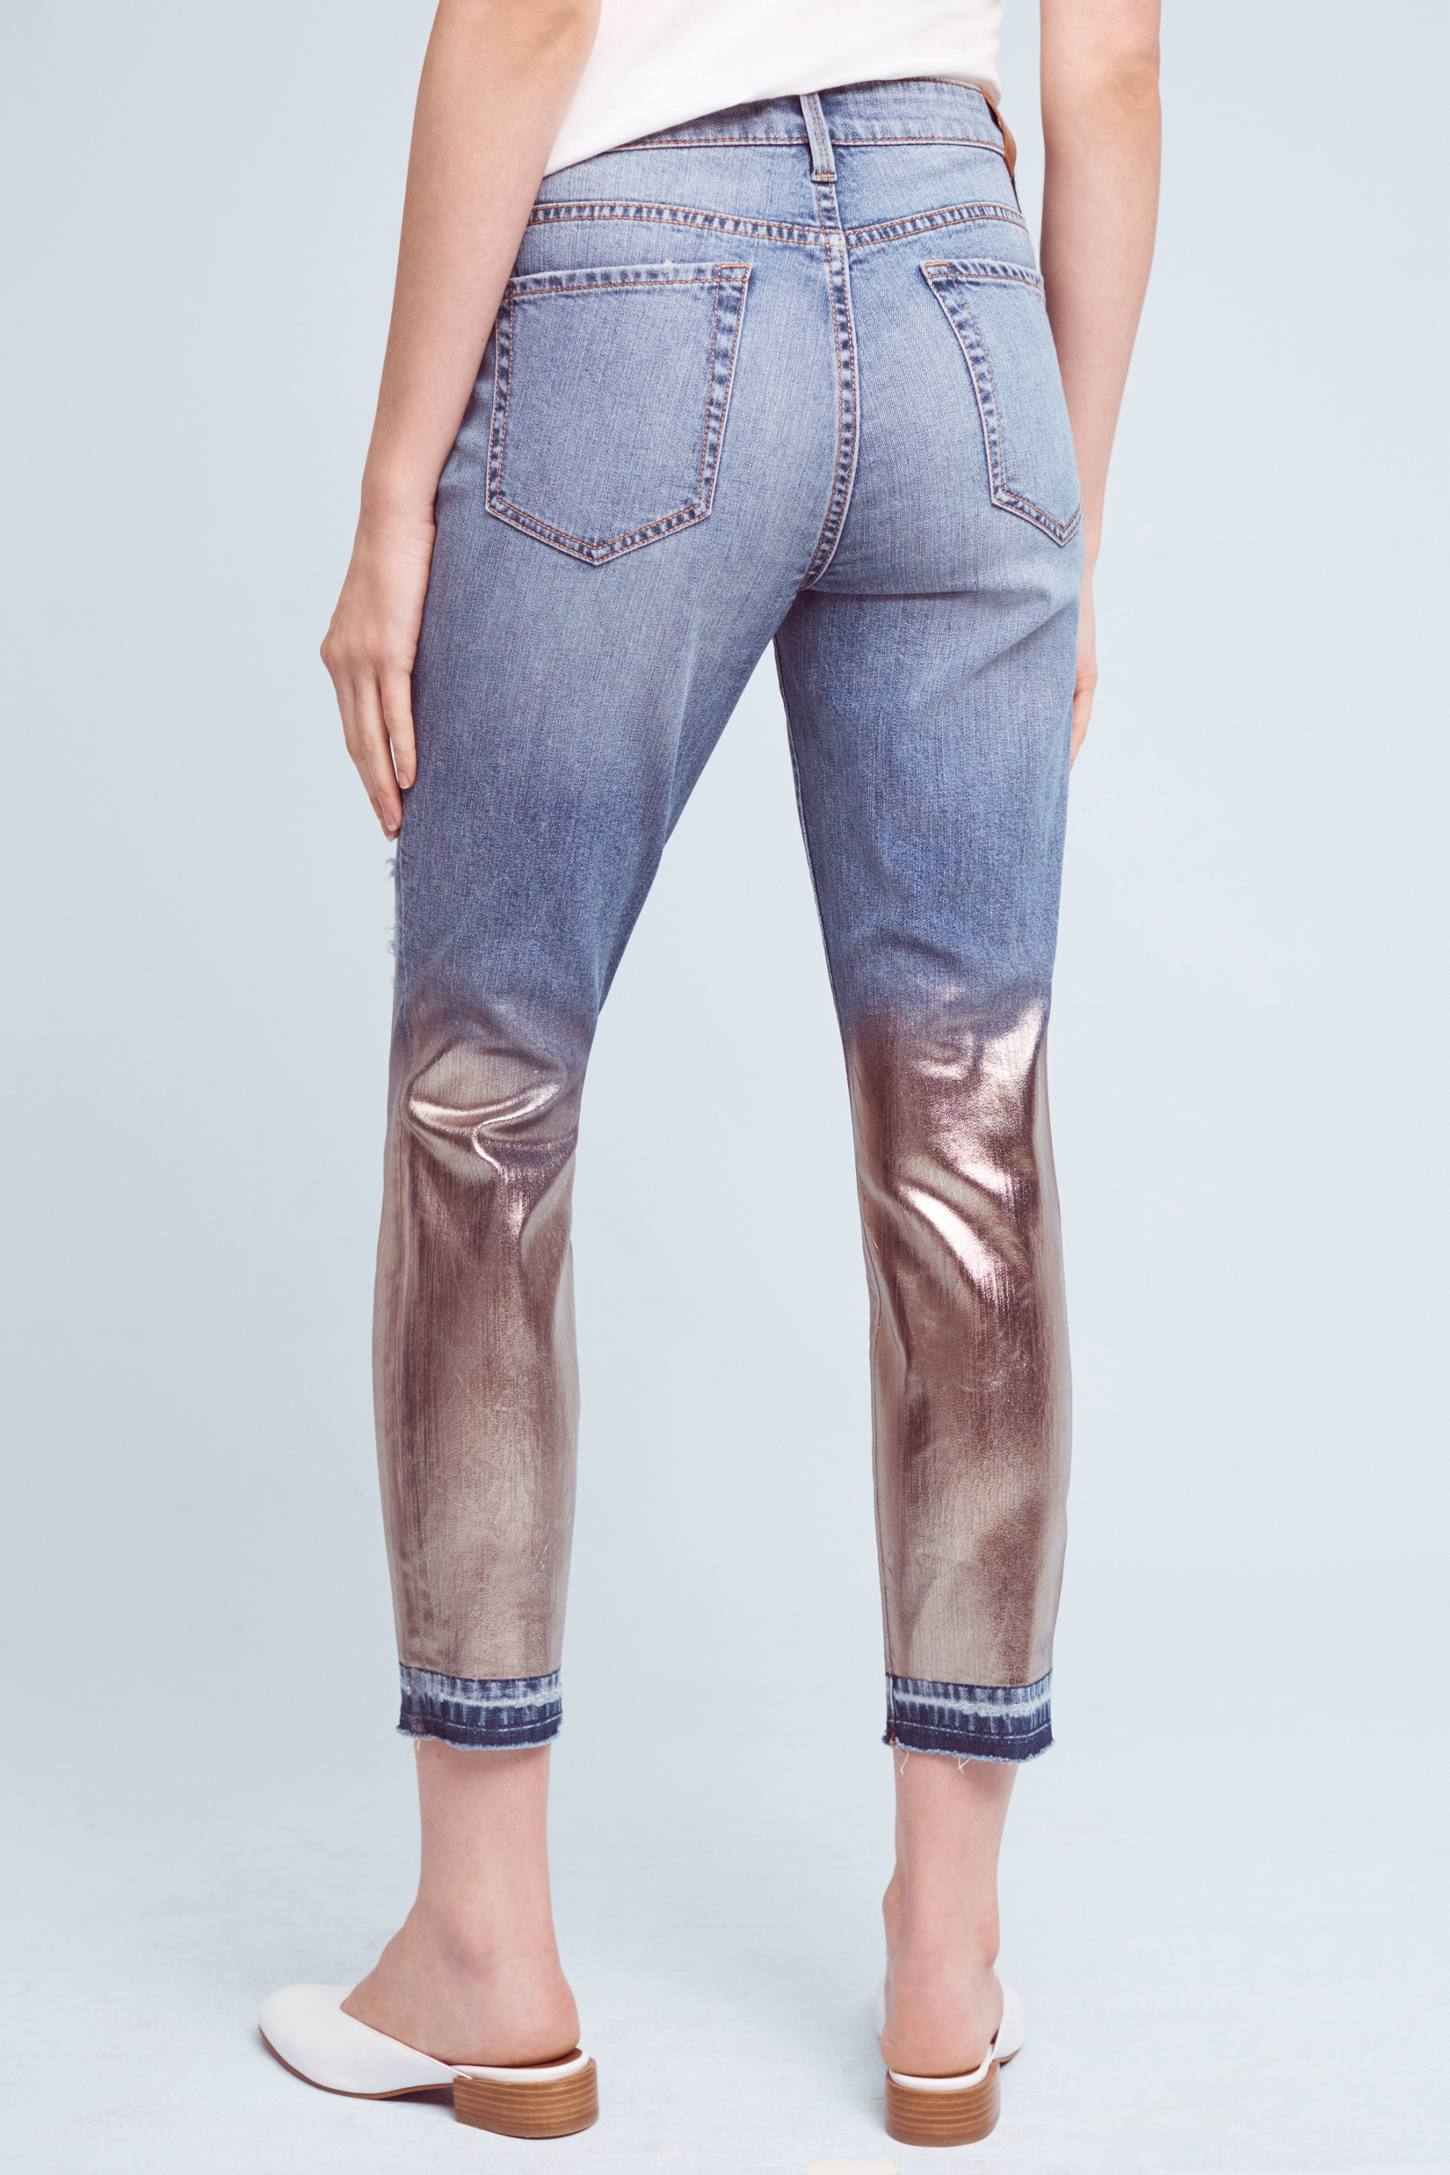 Level 99 Amber Mid-Rise Slouchy Skinny Jeans | Anthropologie